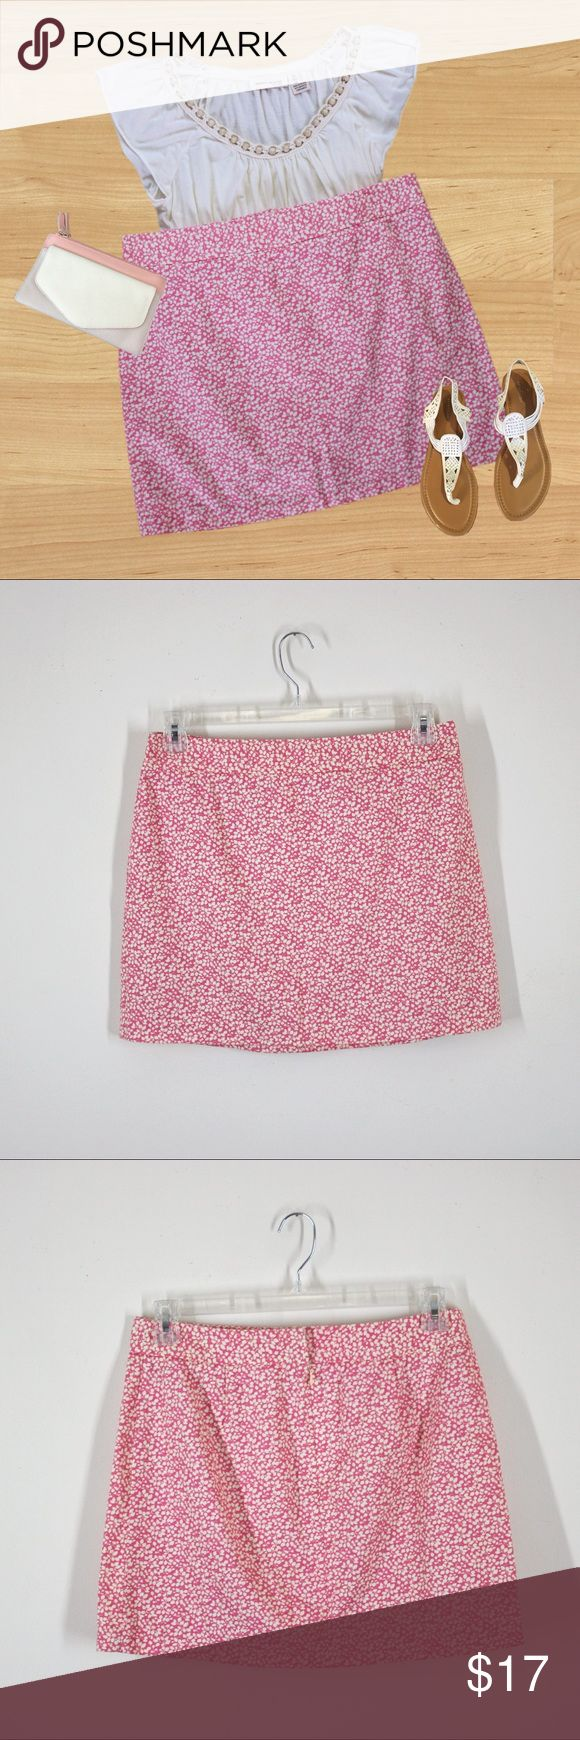 """J.Crew Pink Floral Skirt This skirt is so cute and feminine!  * Colors - Off-white and pink (The last 3 pictures best represent the color) * Back zip with hook and eye closure * Waistband * Stretchy  * 100% cotton   MEASUREMENTS (Approximate)  * Waist 32"""" * Hips 39"""" * Length 15.5""""  This skirt by J.Crew has been preloved, well cared for, and is in great condition. It is a size 8. Thank you for looking, and feel free to make a reasonable offer! J. Crew Skirts Mini"""